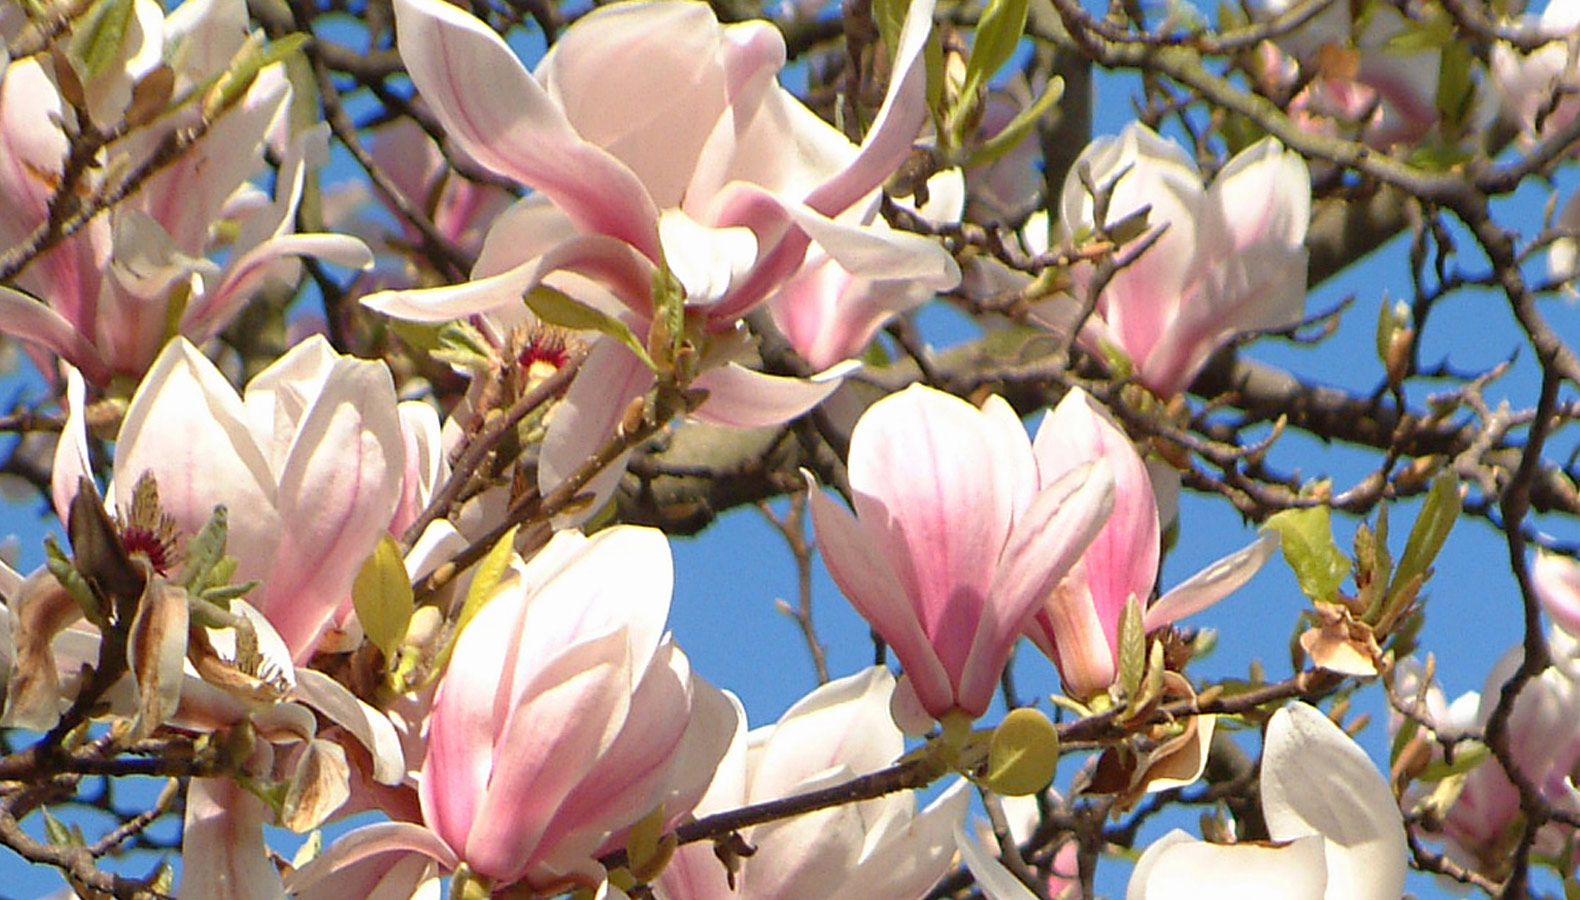 Flowering magnolia tree stencil design inspirations henny so it is every year when magnolia trees come into bud and flower their large majestic flowers unfurling into the cup like open globes of soft blush pink mightylinksfo